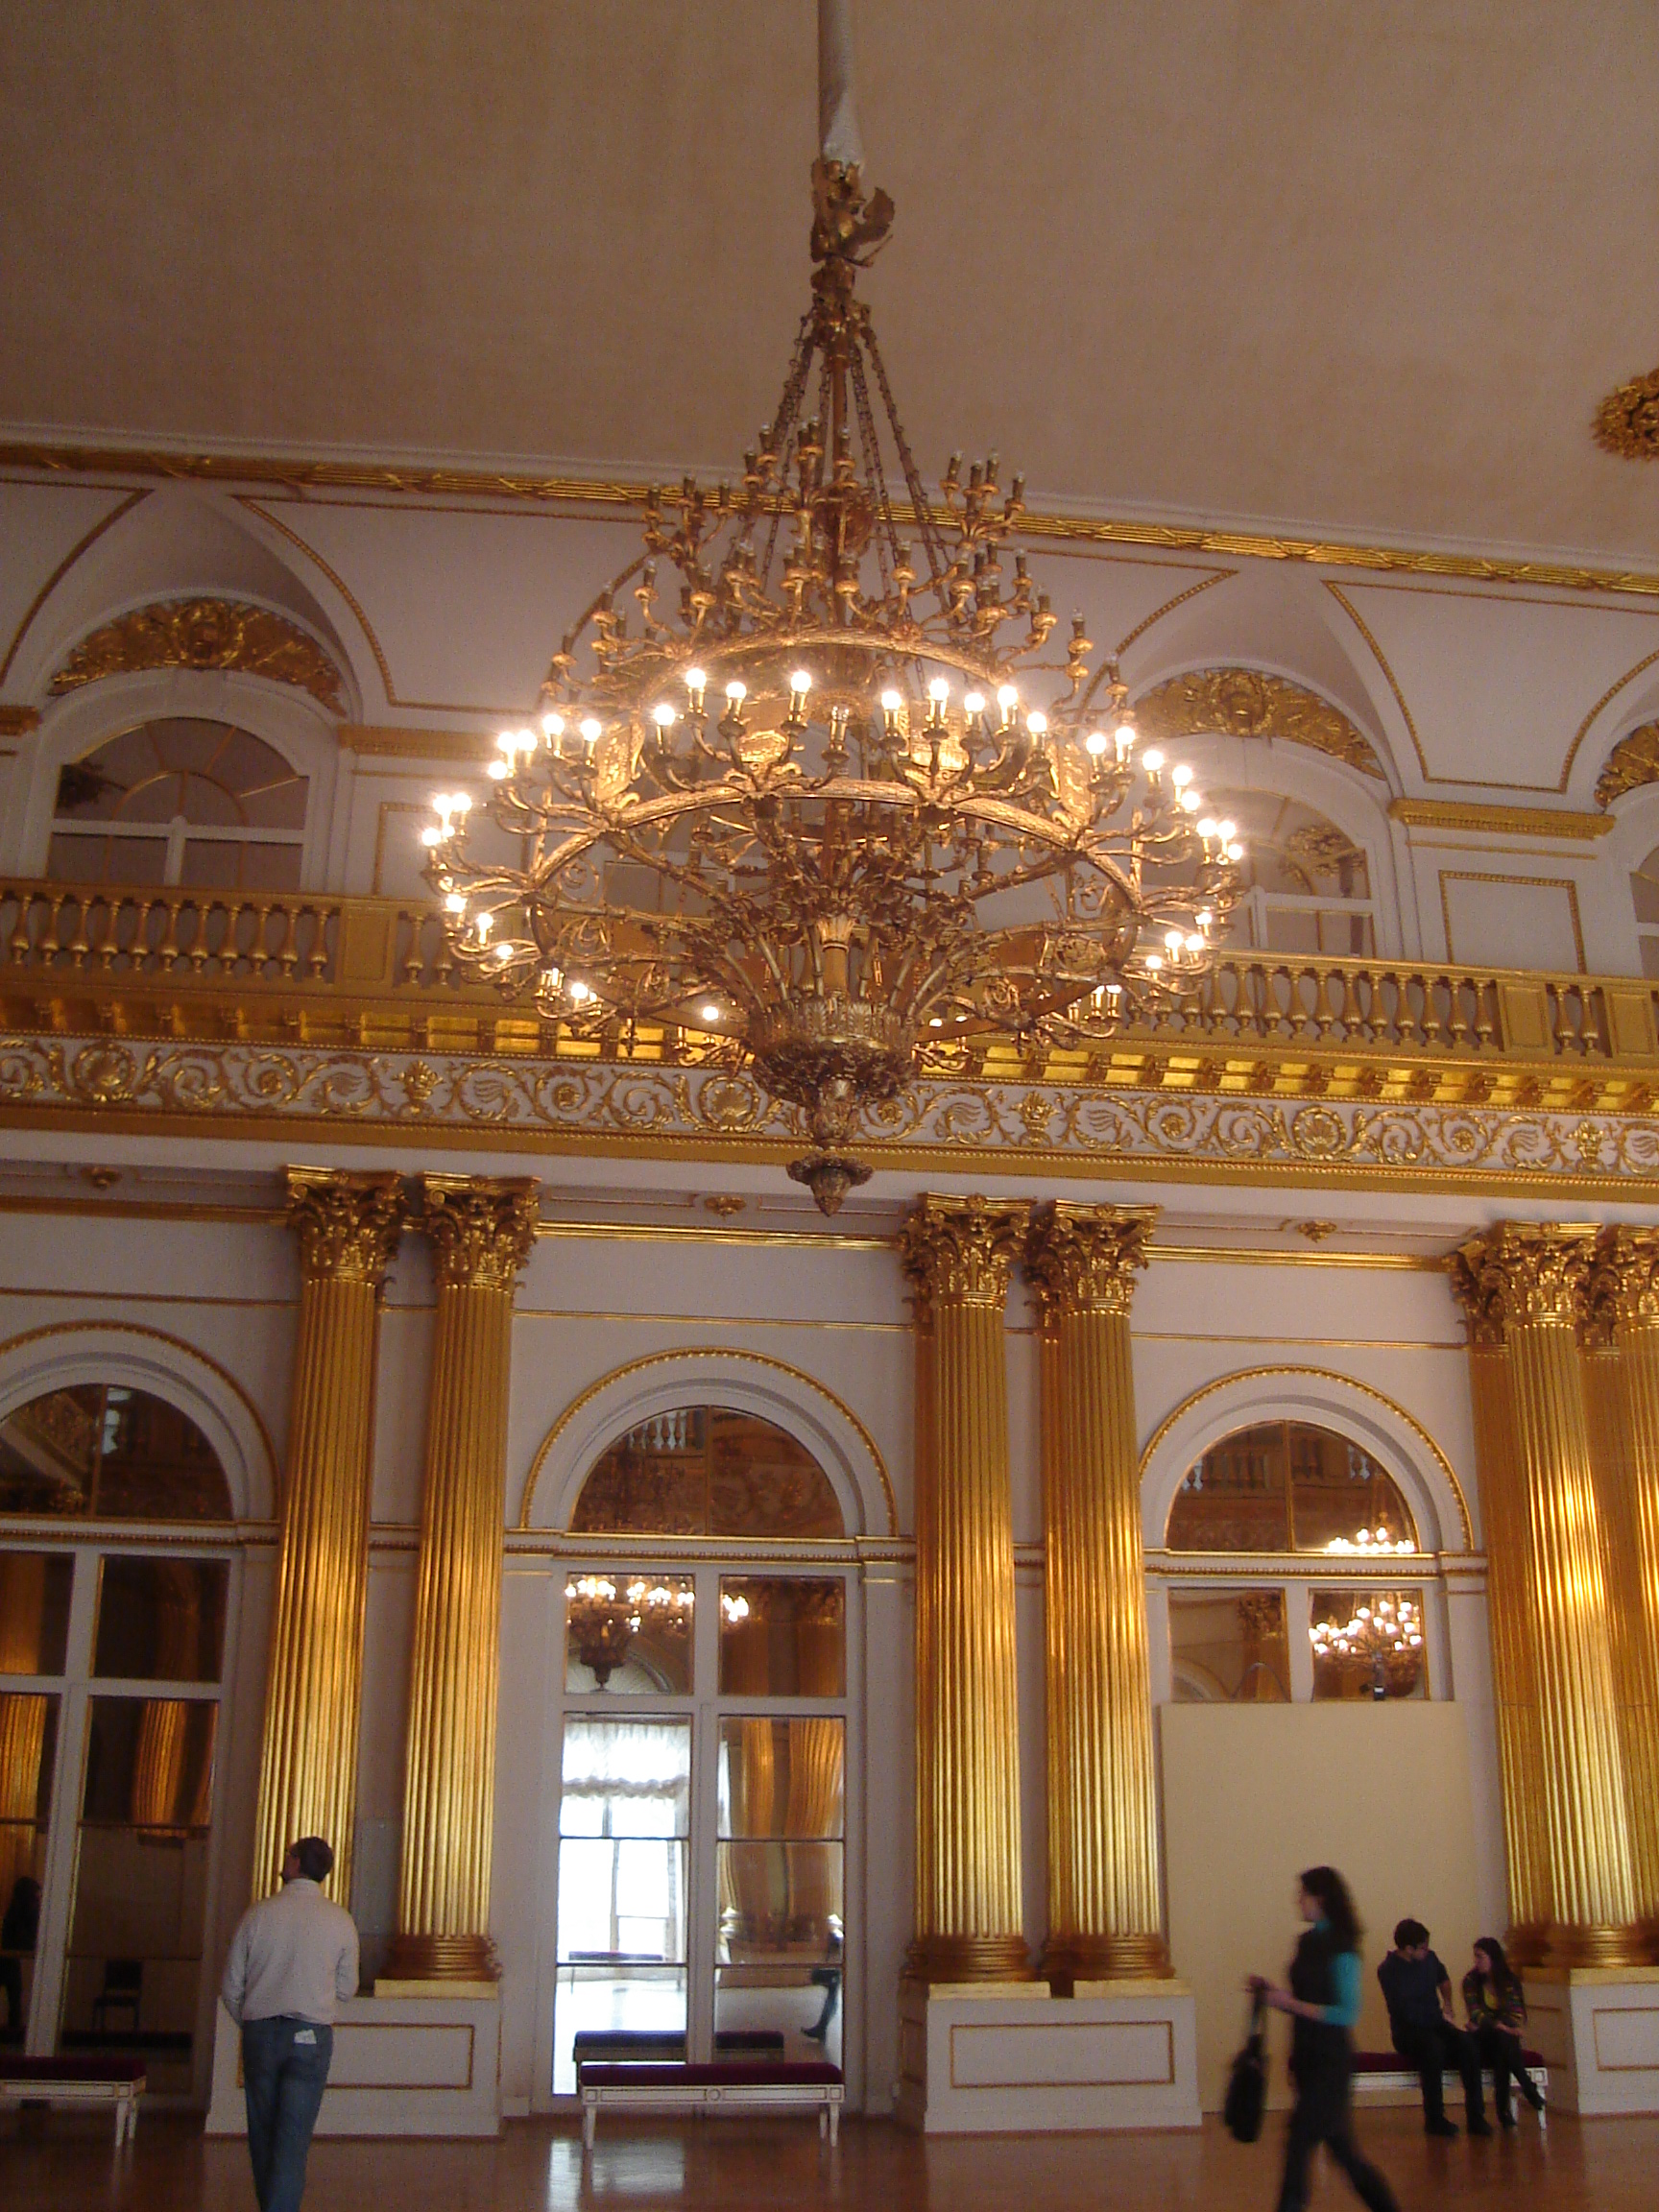 Chandelier in Hermitage, St Petersburg